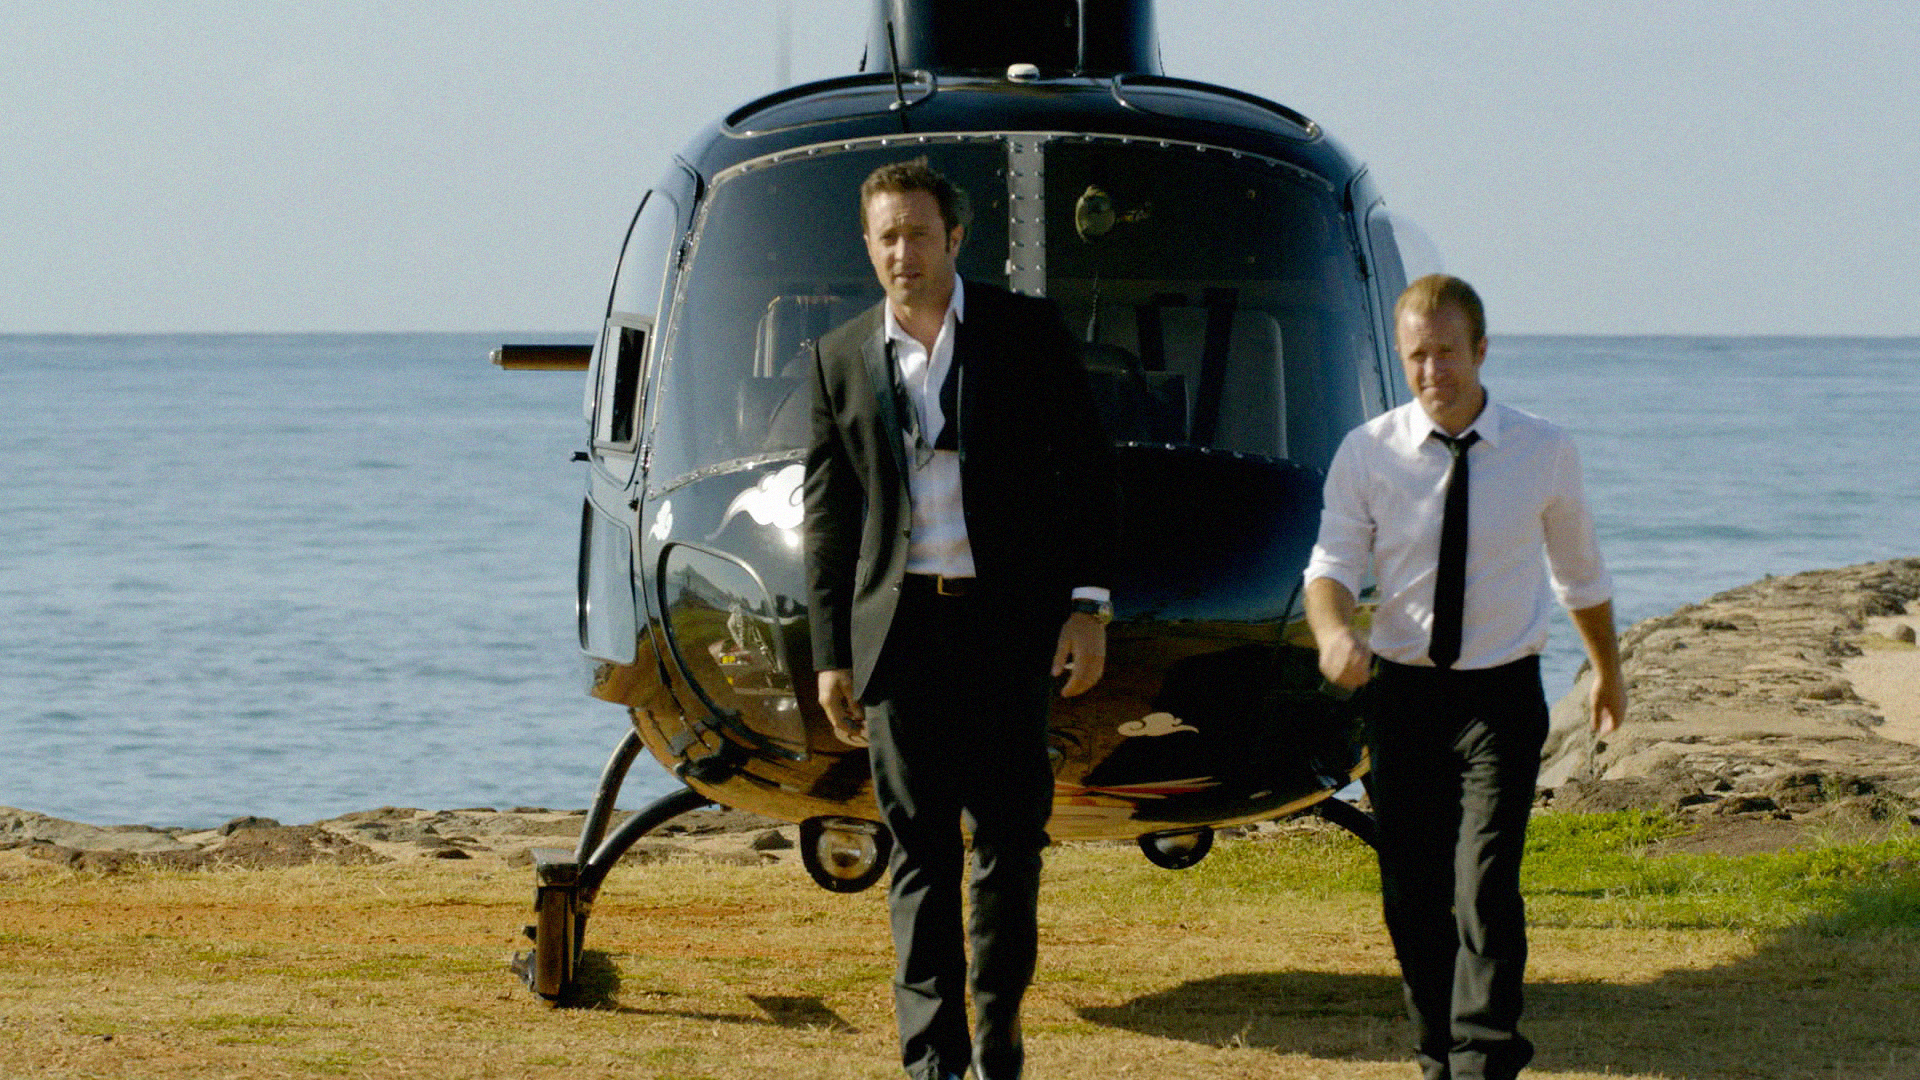 9. You've made nods to various movies. What movie would you like to adopt for a Hawaii Five-0 episode if you could?